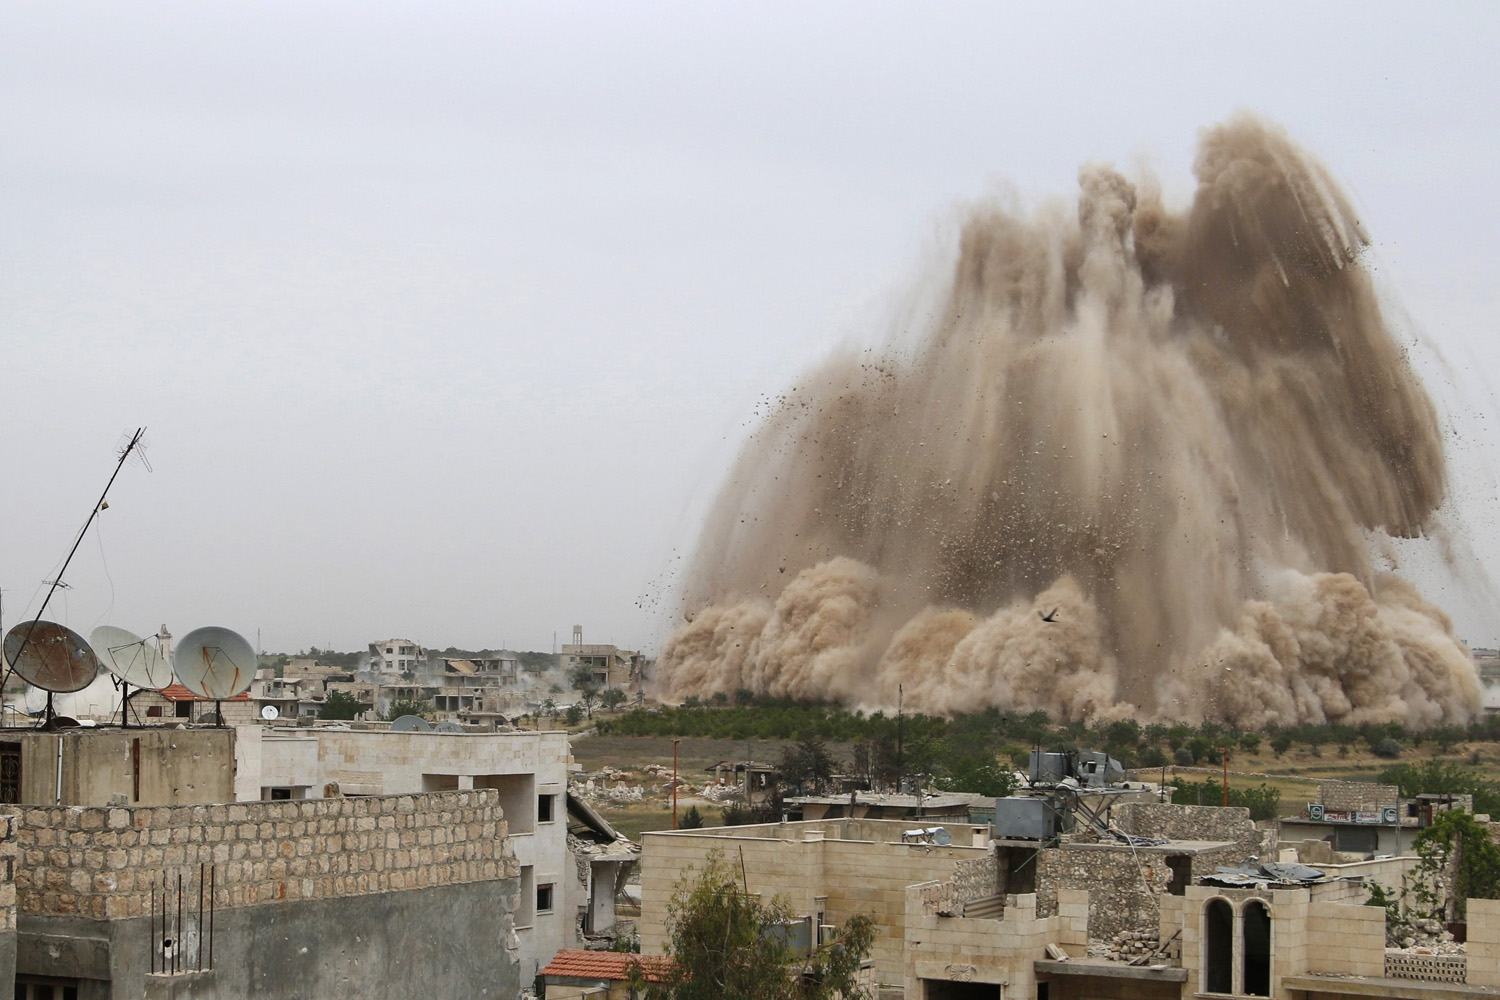 May 5, 2014. Debris rises in what Free Syrian Army fighters and Islamic rebels said was an operation to strike Al-Sahaba checkpoint, which is considered a gateway to Al-Dayf valley, and remove forces loyal to Syria's President Bashar Al-Assad in Maarat Al-Nouman, Idlib province.